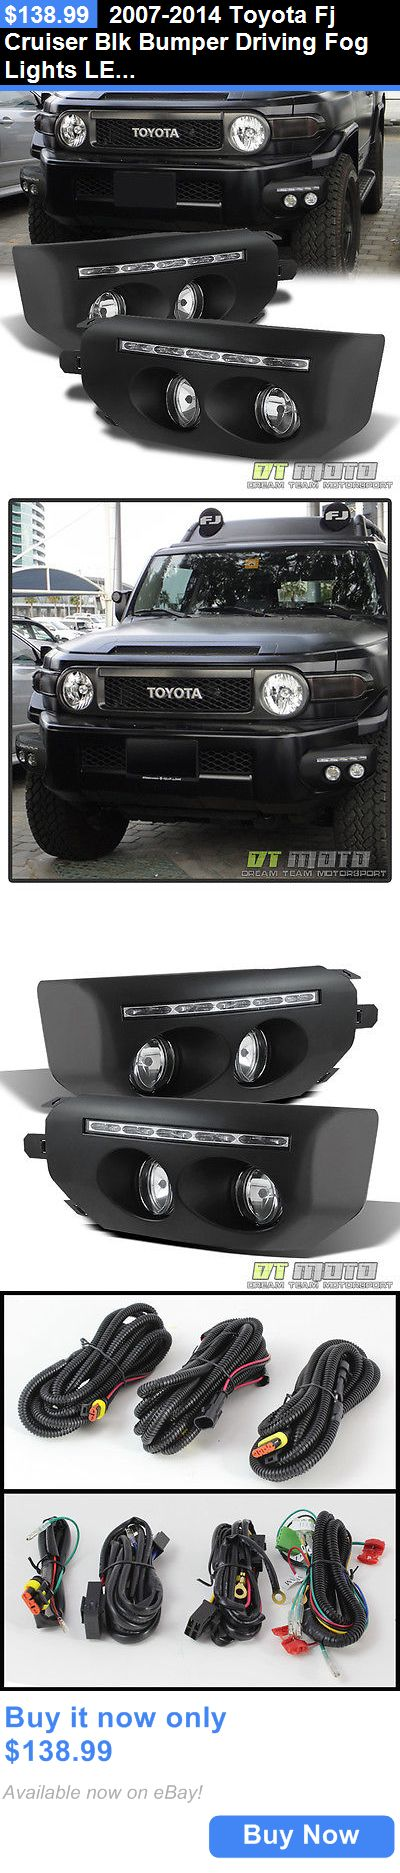 Motors Parts And Accessories: 2007-2014 Toyota Fj Cruiser Blk Bumper Driving Fog Lights Led Drl Running Lamps BUY IT NOW ONLY: $138.99